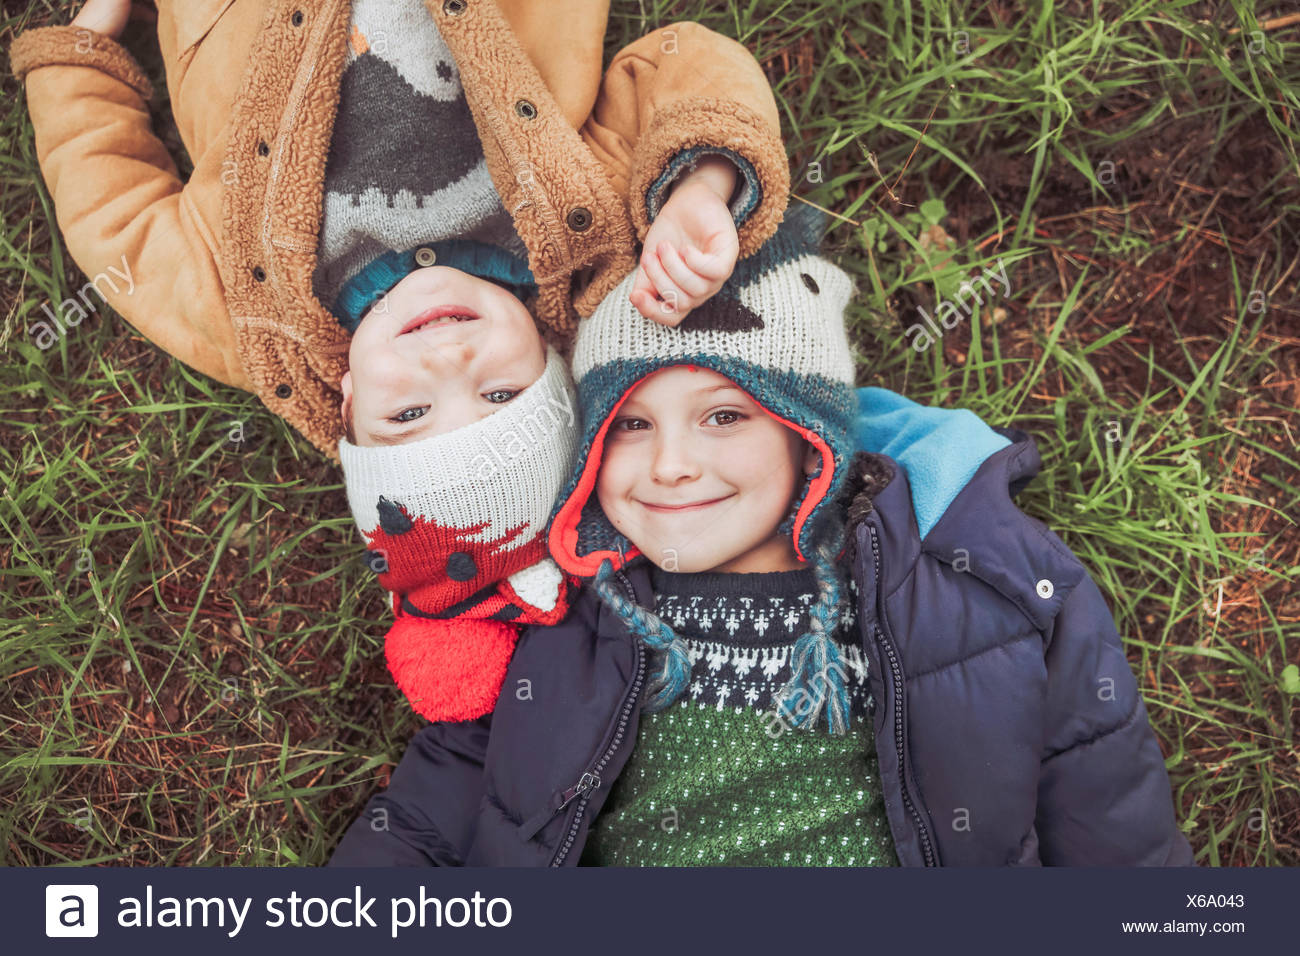 Two boys wearing wooly hats lying in grass Stock Photo  279273459 ... f6e266e72888